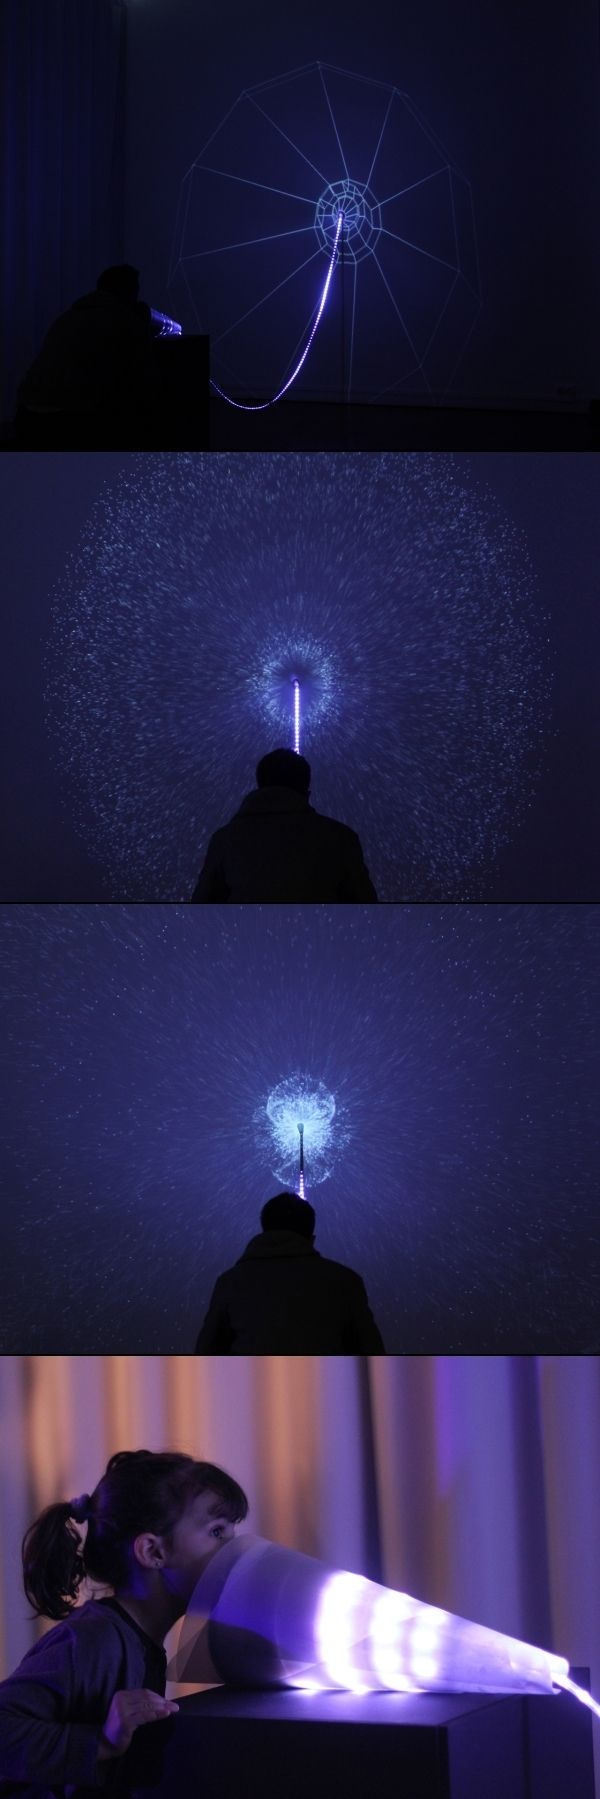 Murmur by Chevalvert, Paris — Visual echo on a wall generated from sound input at the other end of a material/light string